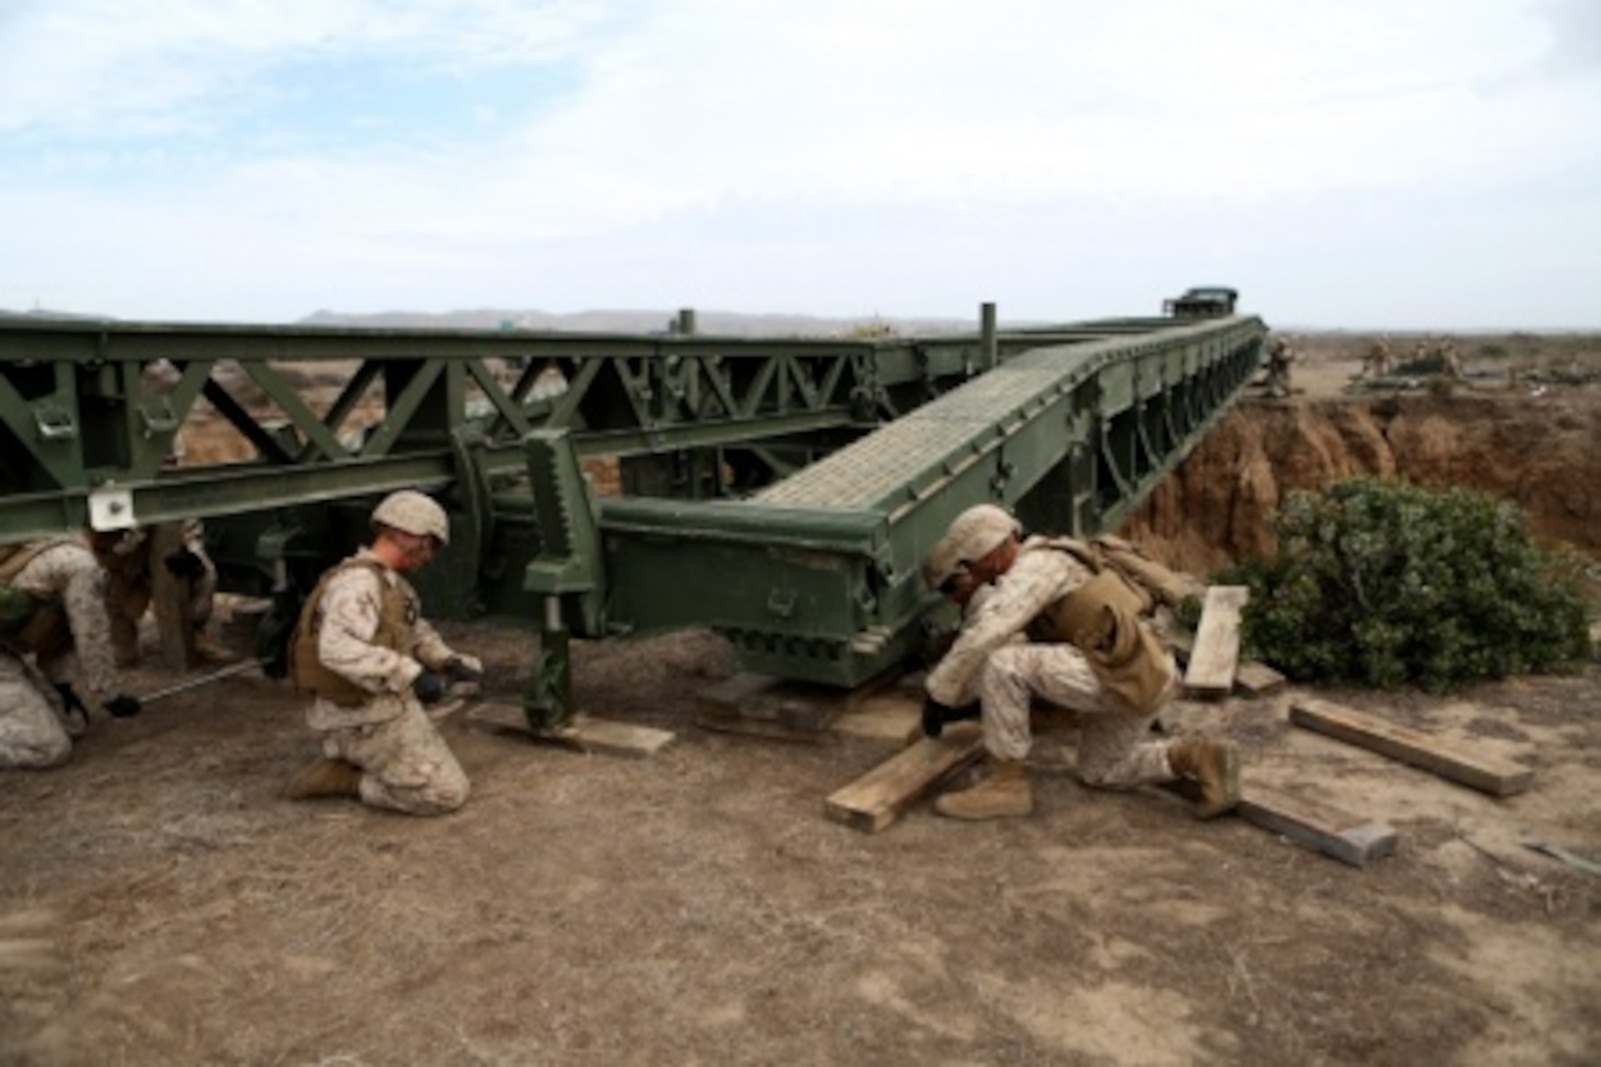 Engineers from Bridge Company, 7th Engineer Support Battalion, 1st Marine Logistics Group stabilize the end of a medium girder bridge aboard Camp Pendleton, Calif., Sept. 21, 2015. Marines from 7th ESB and 1st Combat Engineer Battalion are conducting various engineer training events alongside British Royal Engineers from the 54 Commando Squadron in coming weeks as part of annual large-scale exercise Black Alligator.